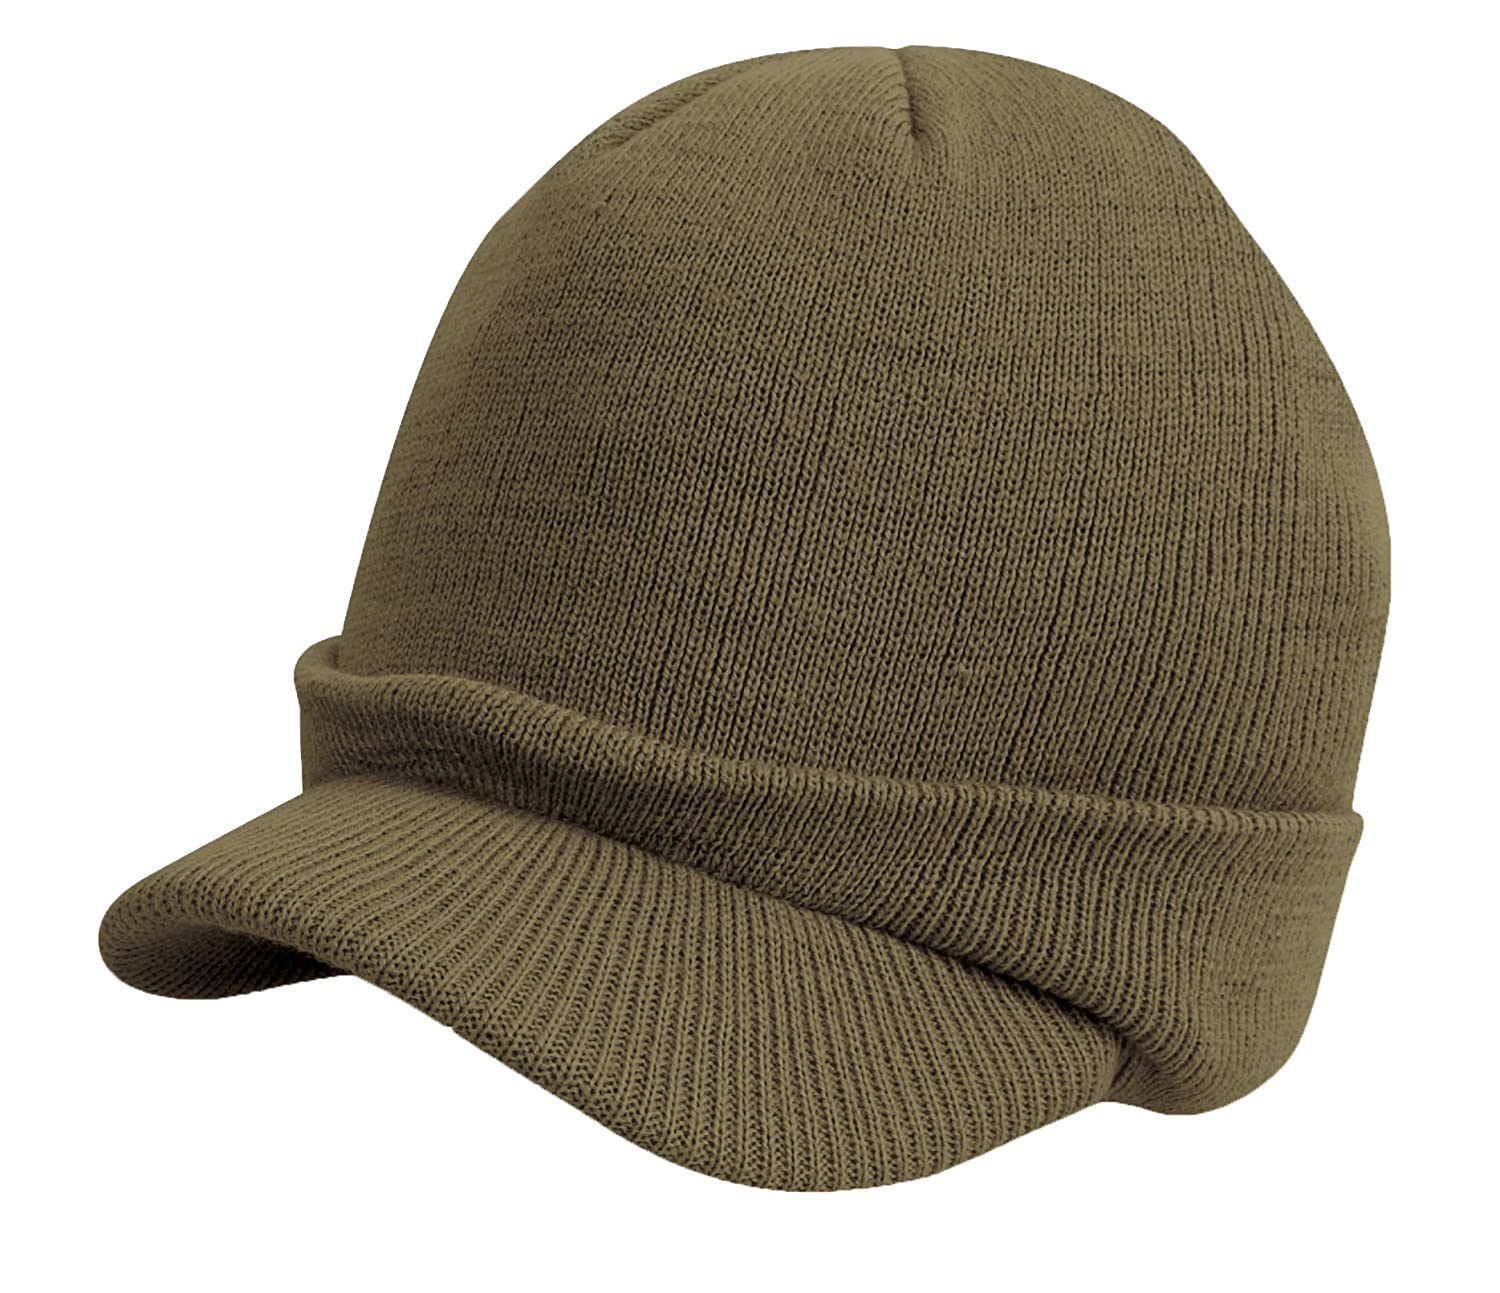 Youth Peaked Beanie Hat Winter Army Cadet Wooly Cap